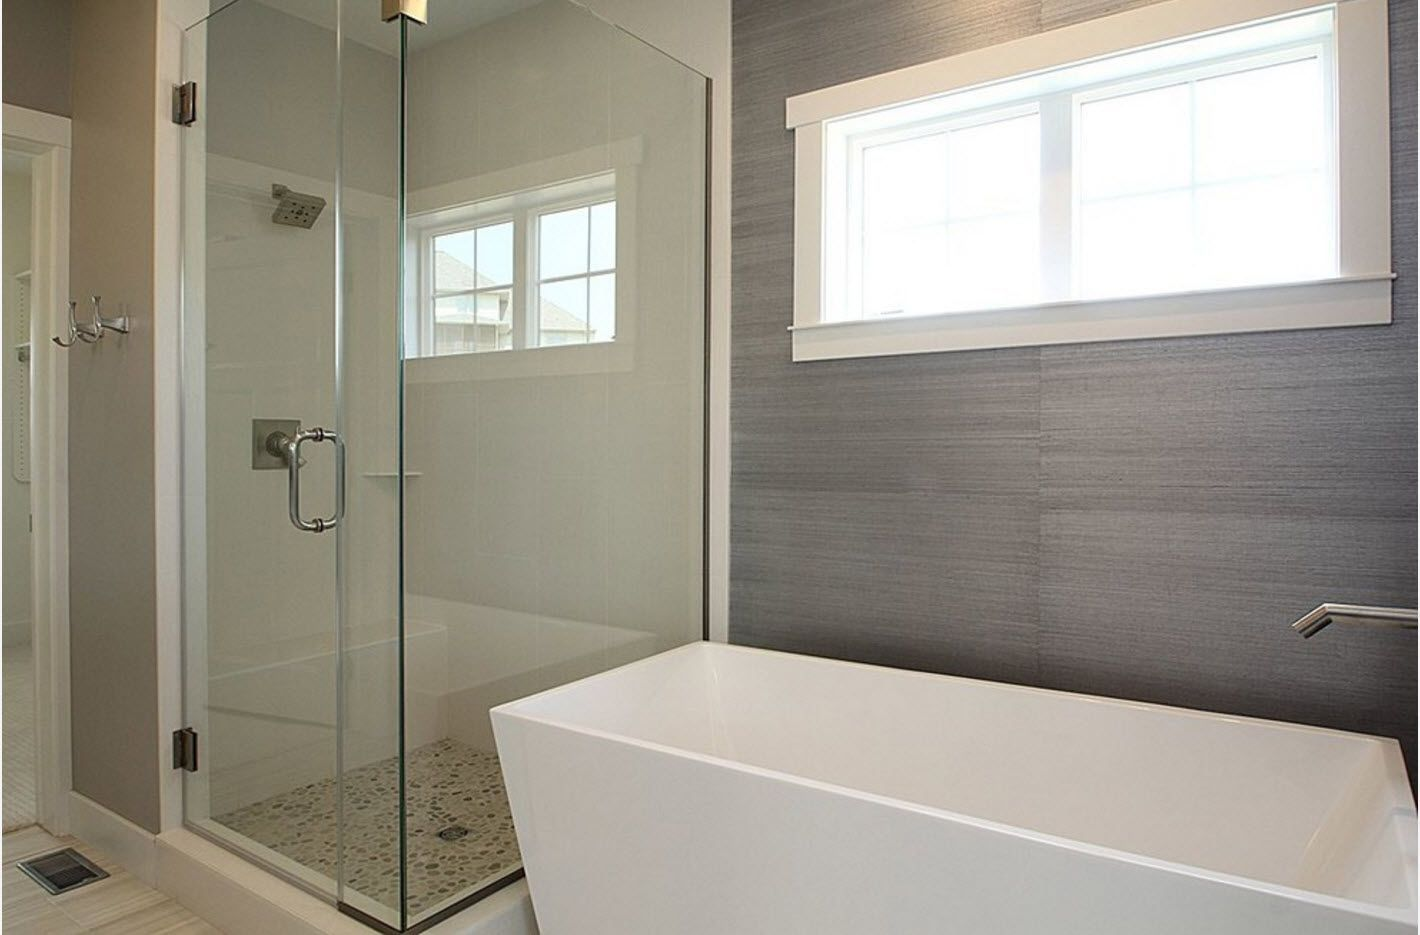 Steel gray color tile slabs for finishing and squared bathtub